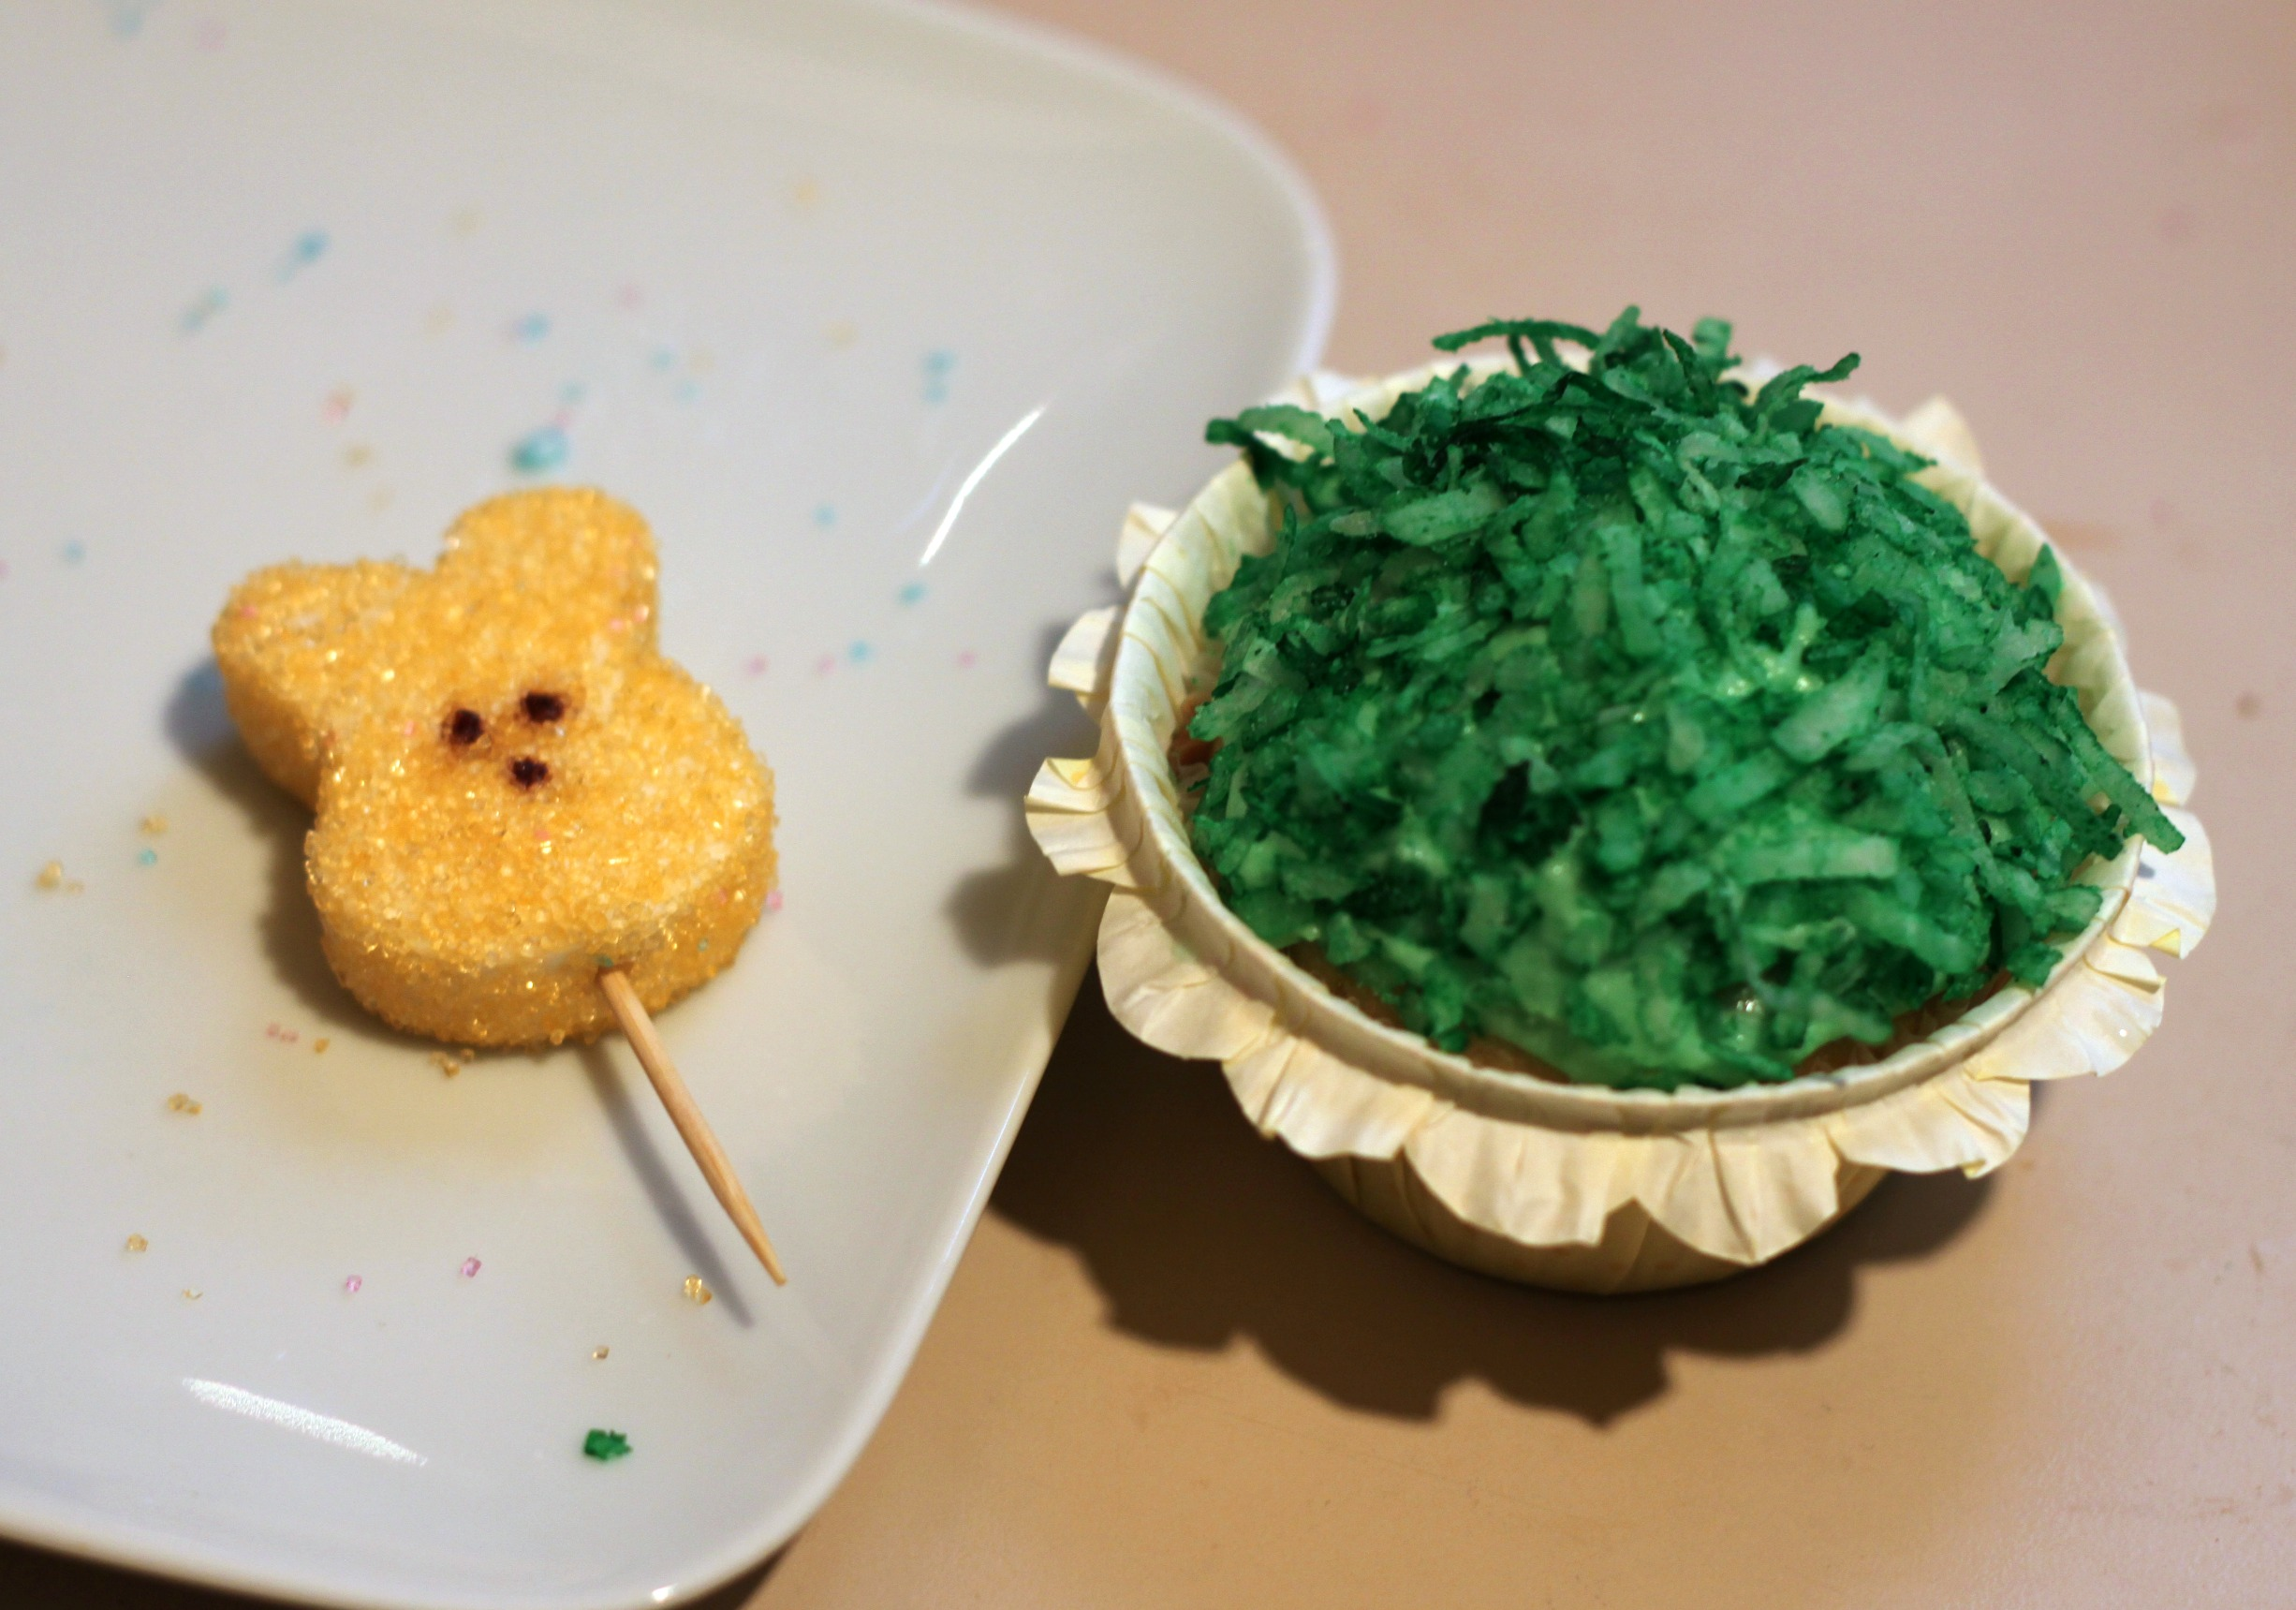 Impale a Peep with a toothpick